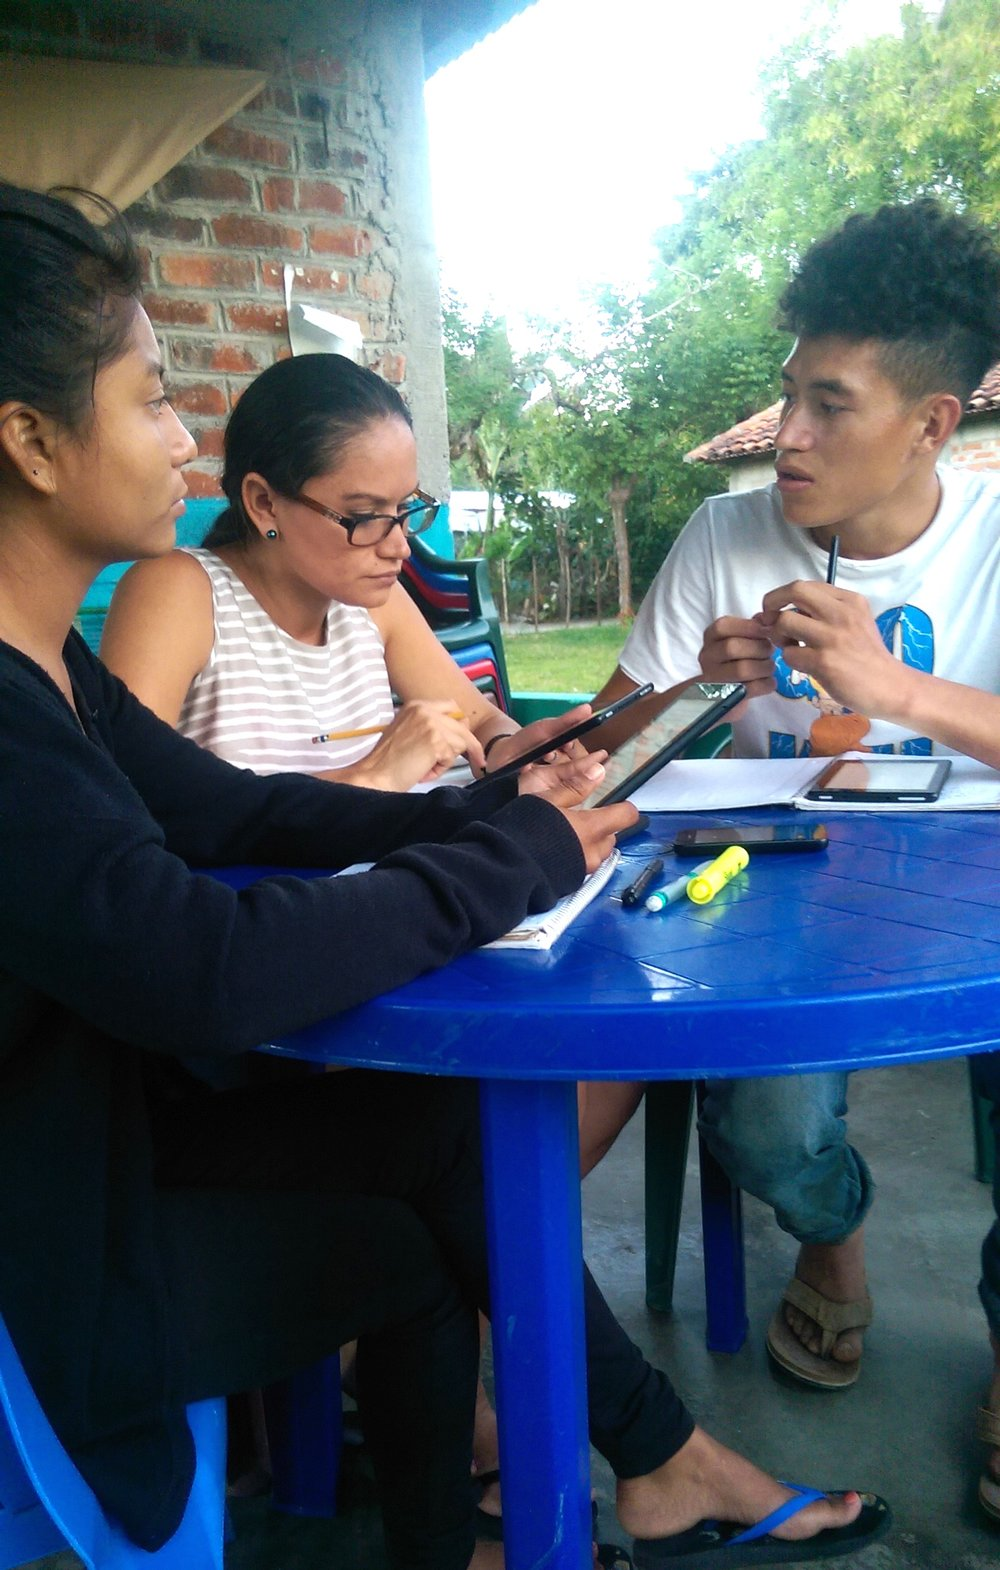 Lorena Mejia (middle), Doris Mercado (left) and Orlando Pineda (right) are taking an online class regarding Methods of Teaching taught by team members Betsy Johnson, Ben Reese and Rafael Reyes.Via the communication application WhatsApp, discussion with instructors involves their assigned readings, homework and volunteering in local classrooms.